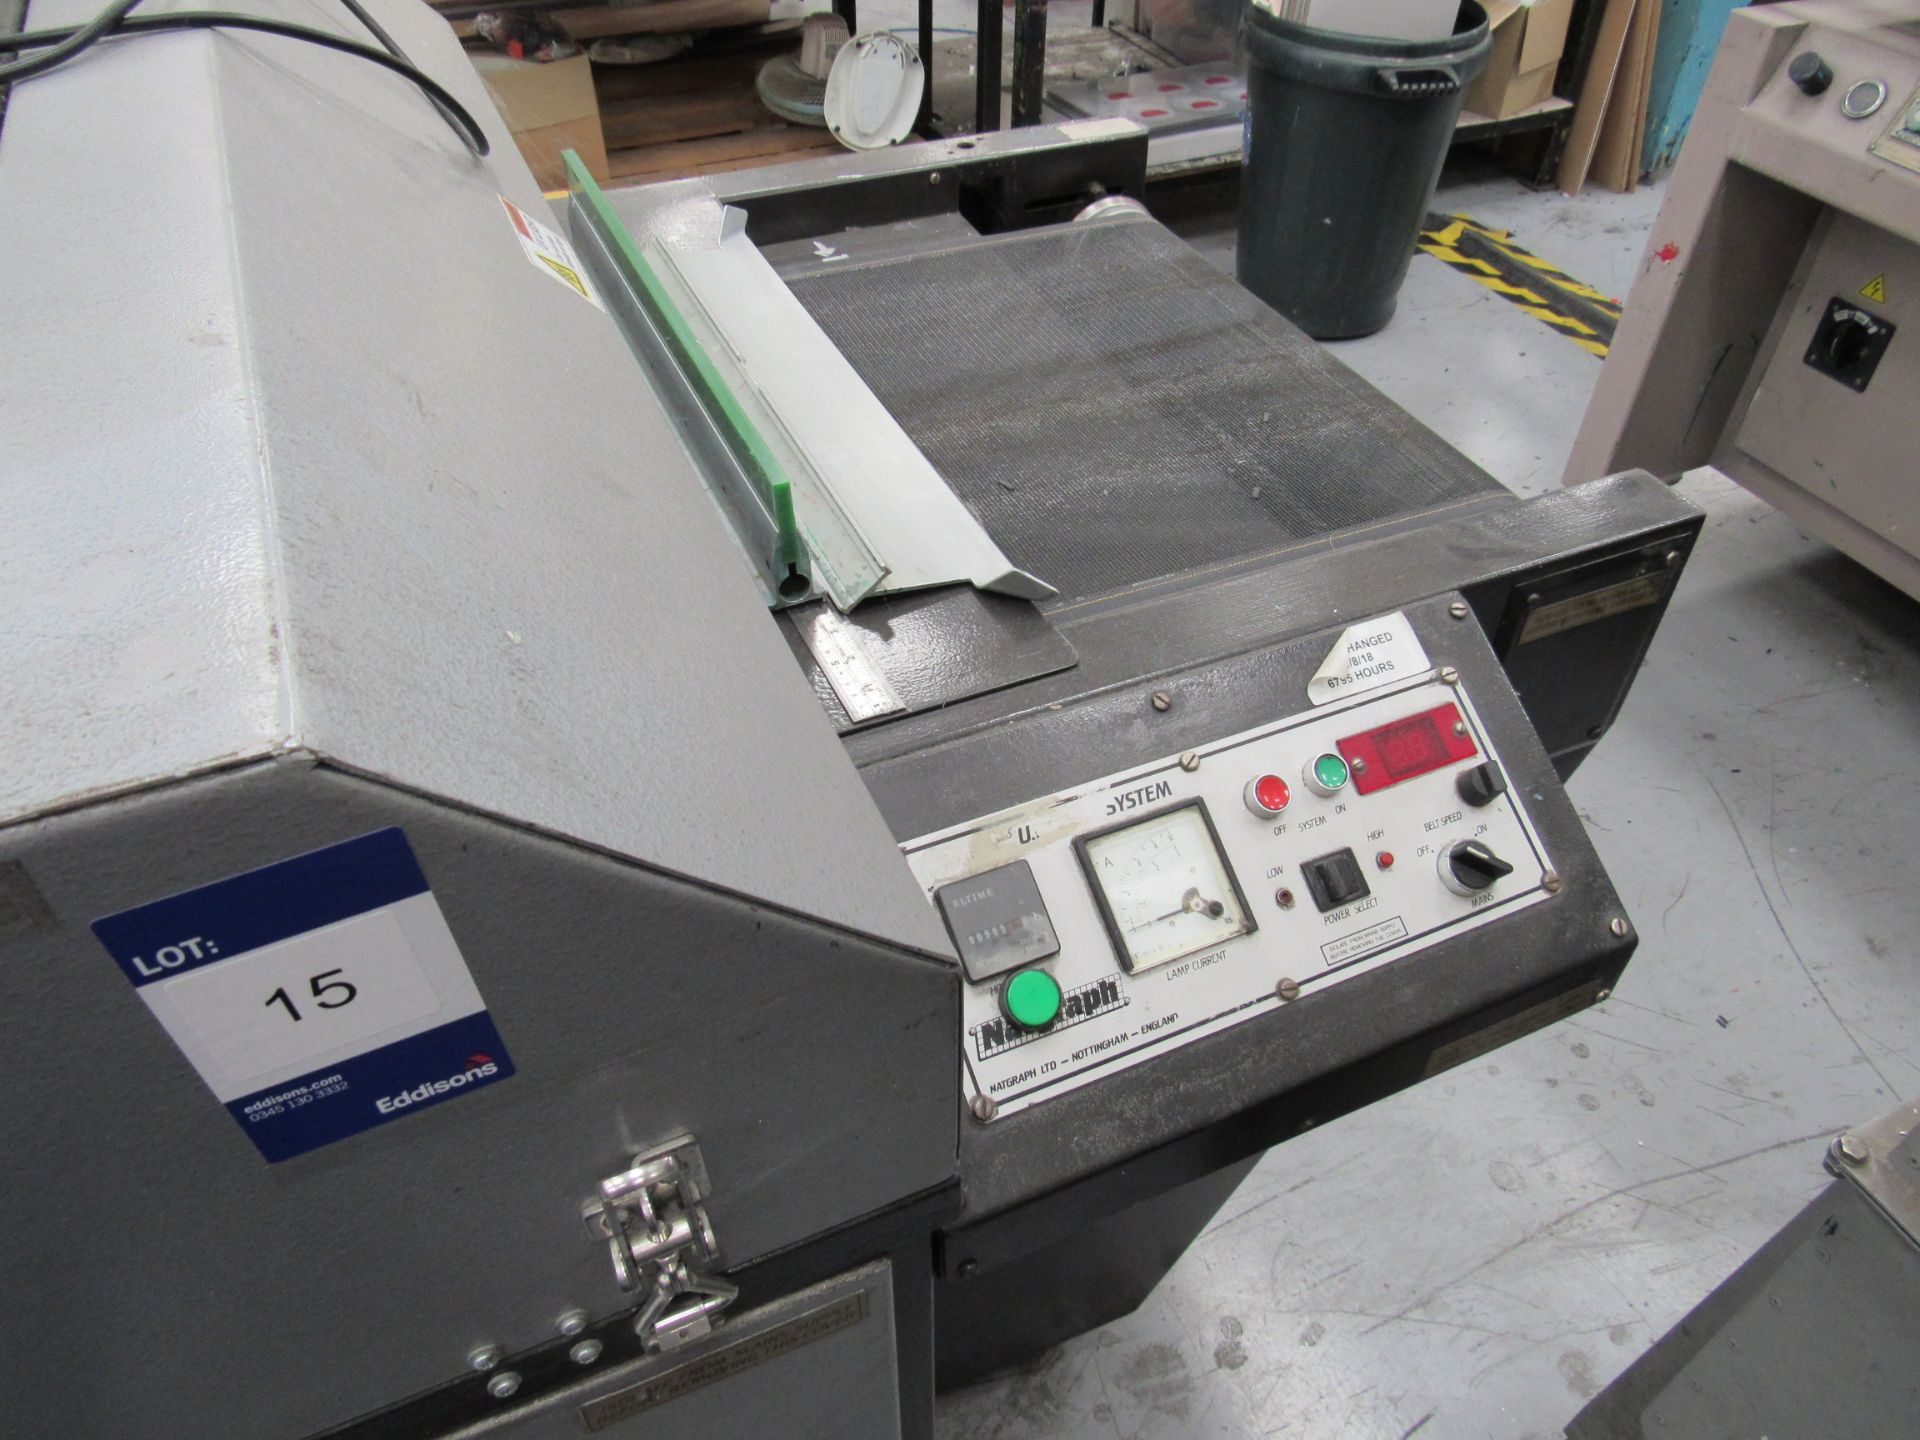 Natgraph UV Drier with Belt, 6985 Hours, Lamp Changed at 6795 Hours - Image 2 of 4